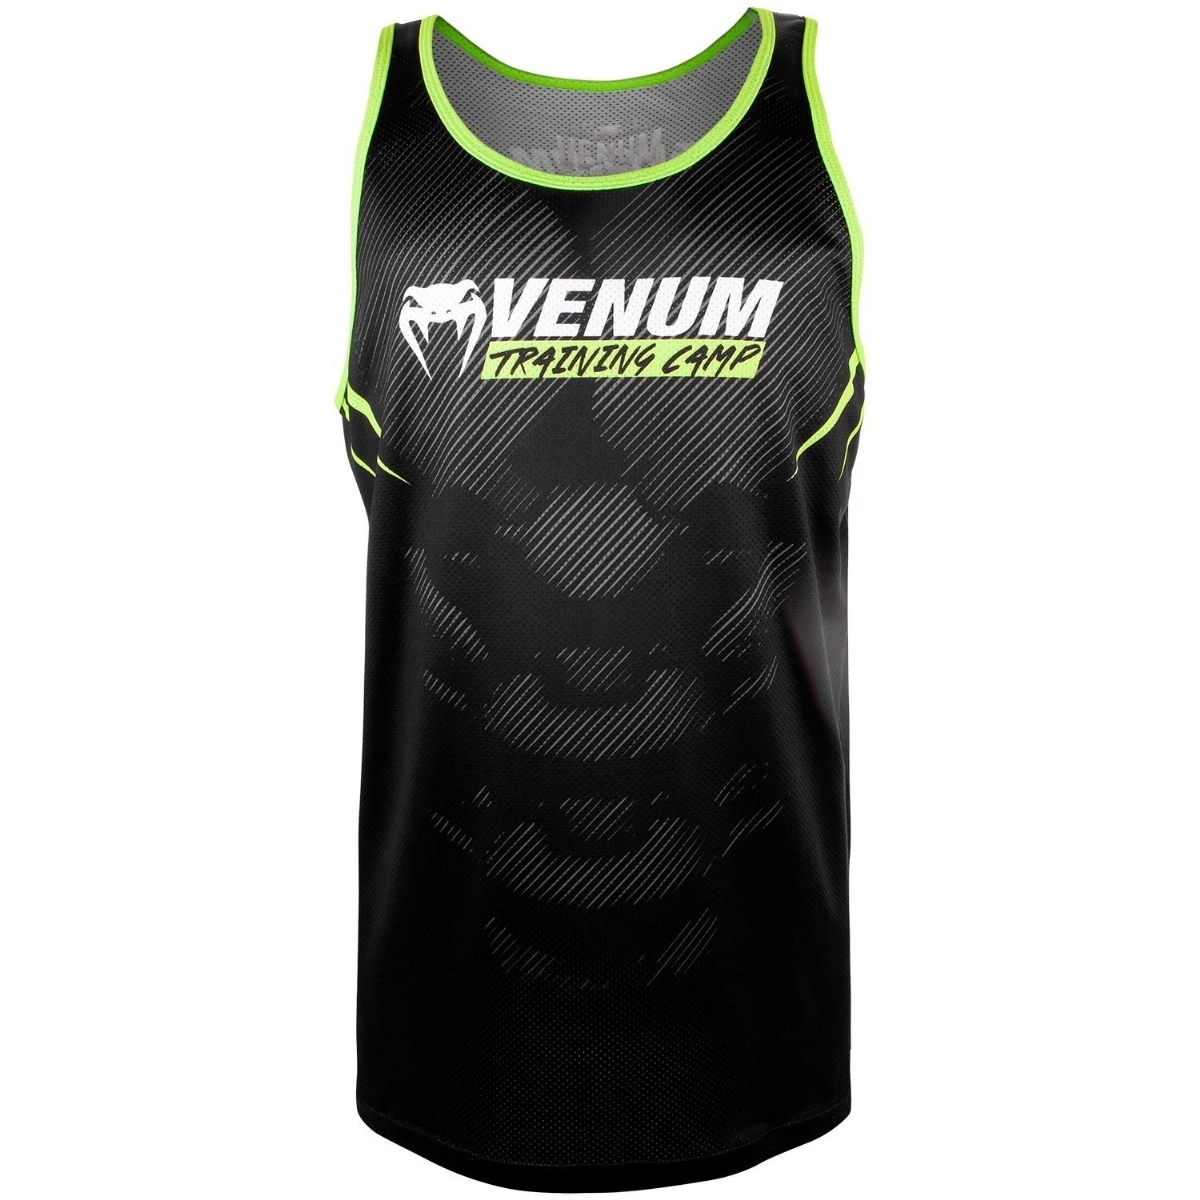 77f68953e109f Venum Venum Training Camp 2.0 Tank Top - Black Neo Yellow VE-03592-116-S